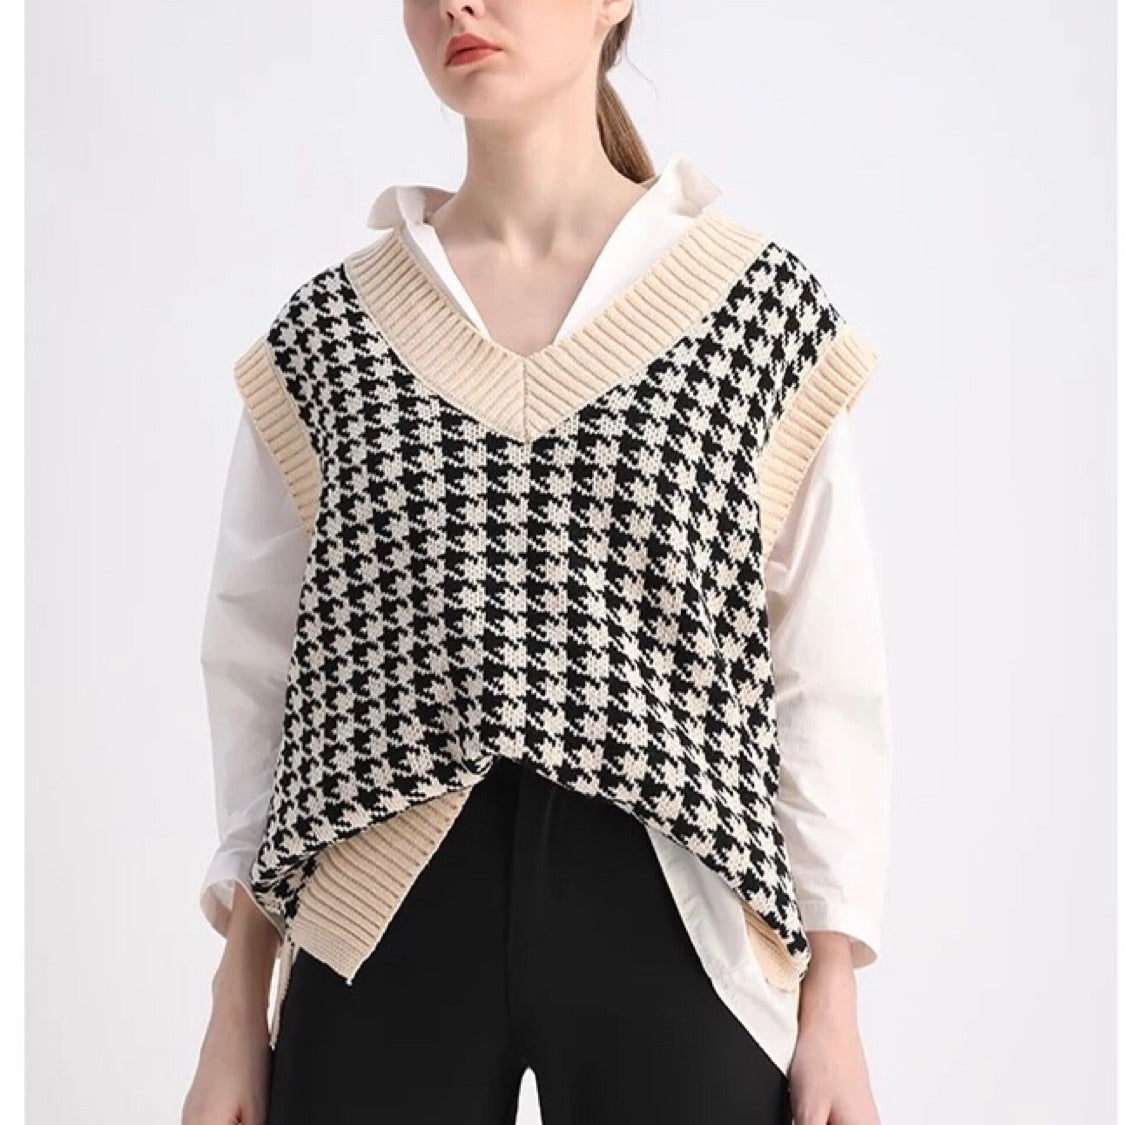 Oversized Houndstooth Knitted Vest - Cila Clothing